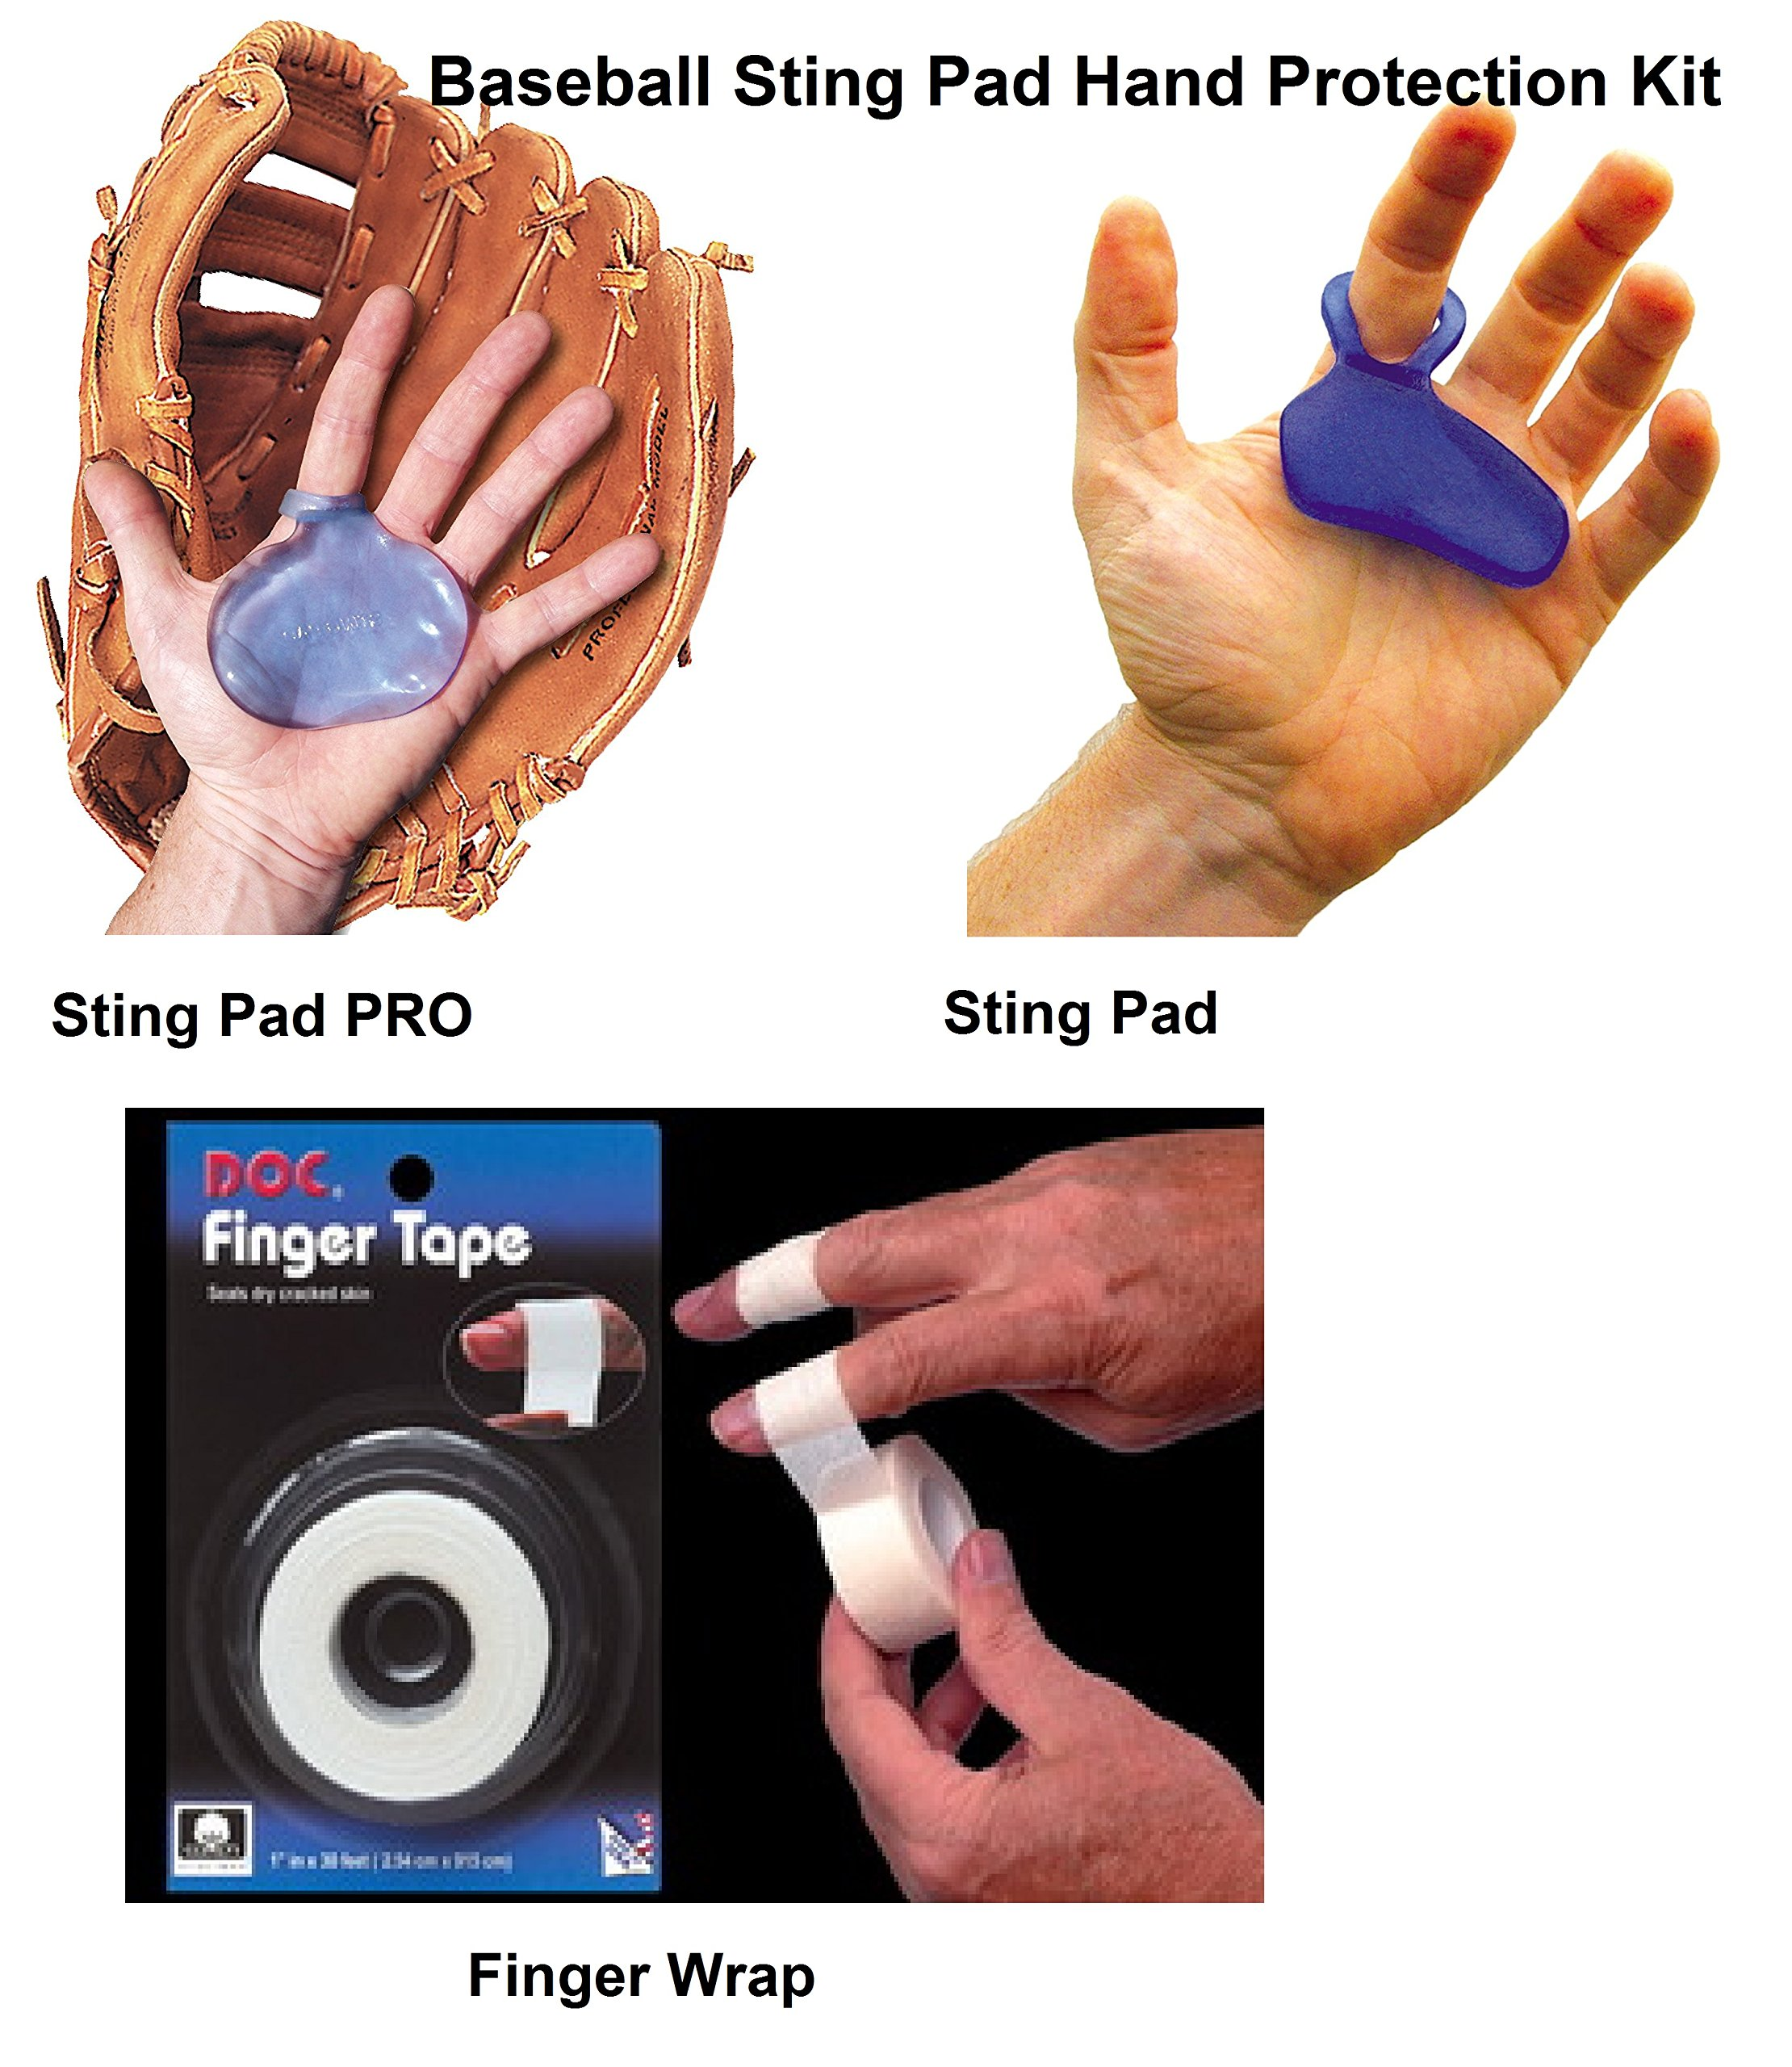 Baseball Sting Pad Pro Hand Protection 3 Piece Bundle with Finger Wrap by Hot Glove